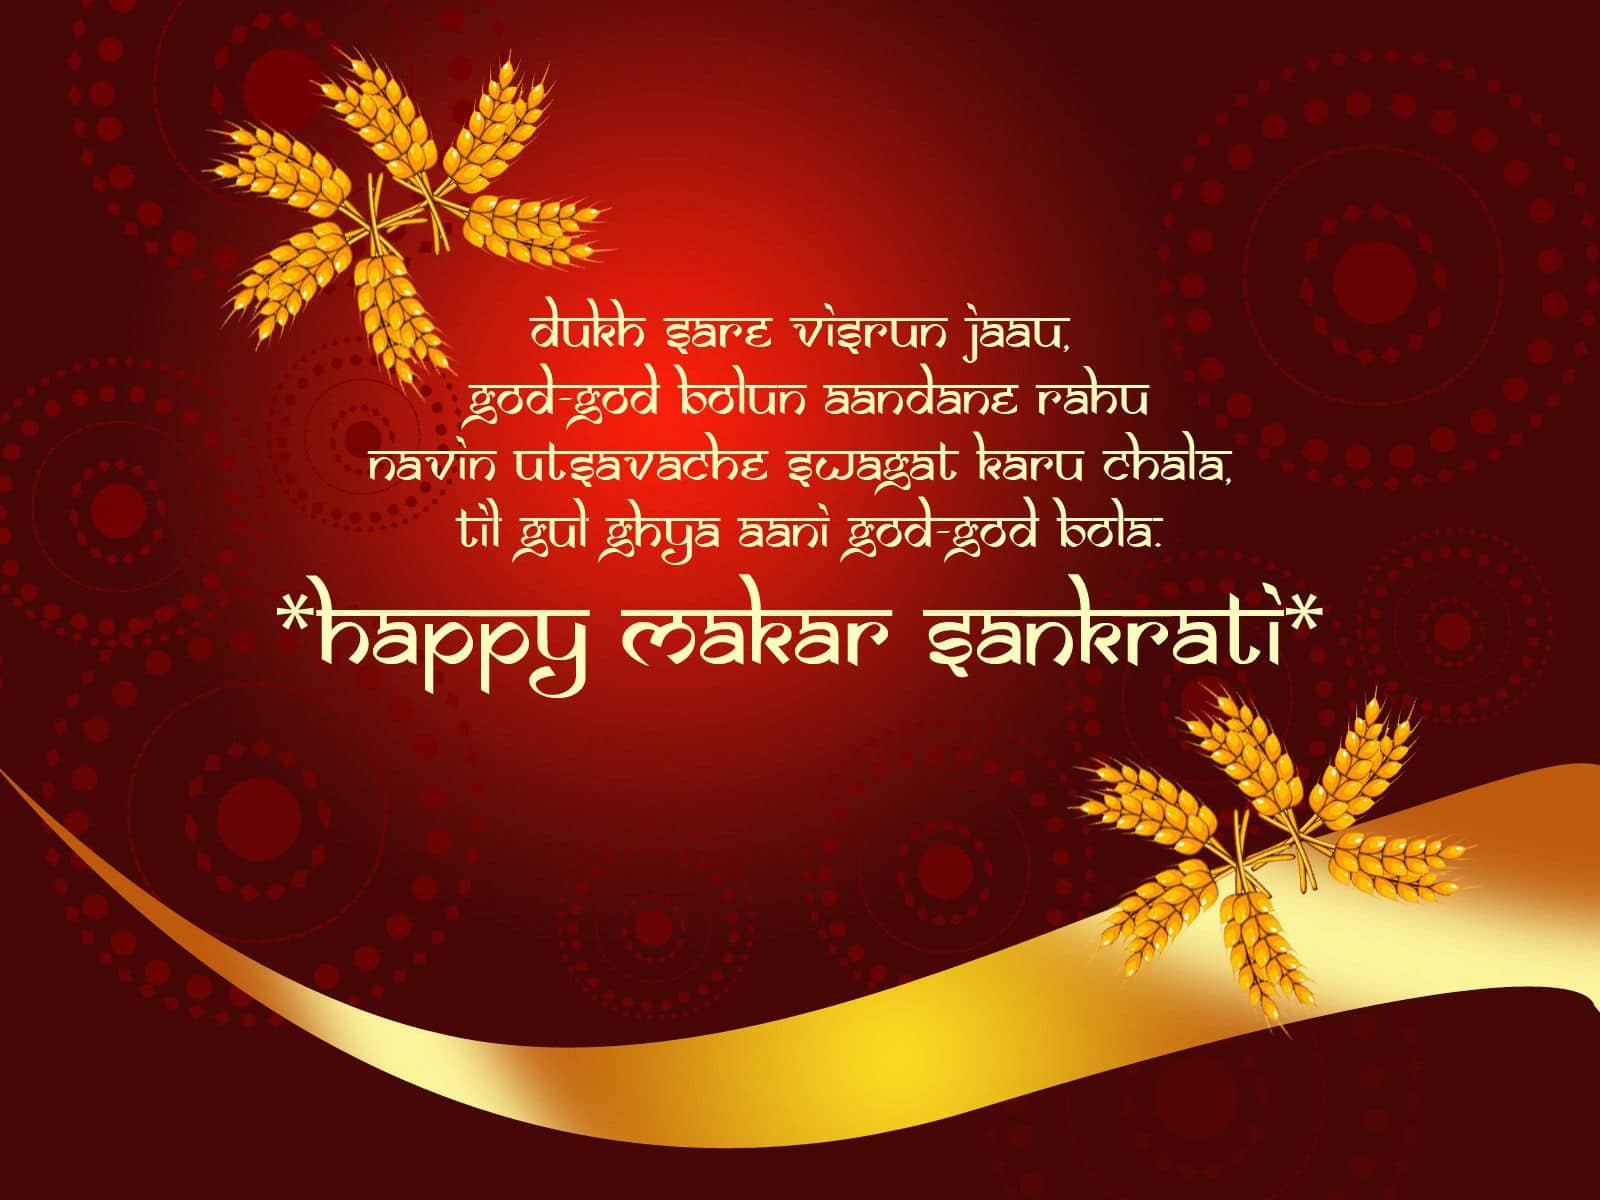 Cool Wallpaper Name Prashanth - Whatsapp-sankranti-Photos  Picture_489688.jpg?fit\u003d1600%2C1200